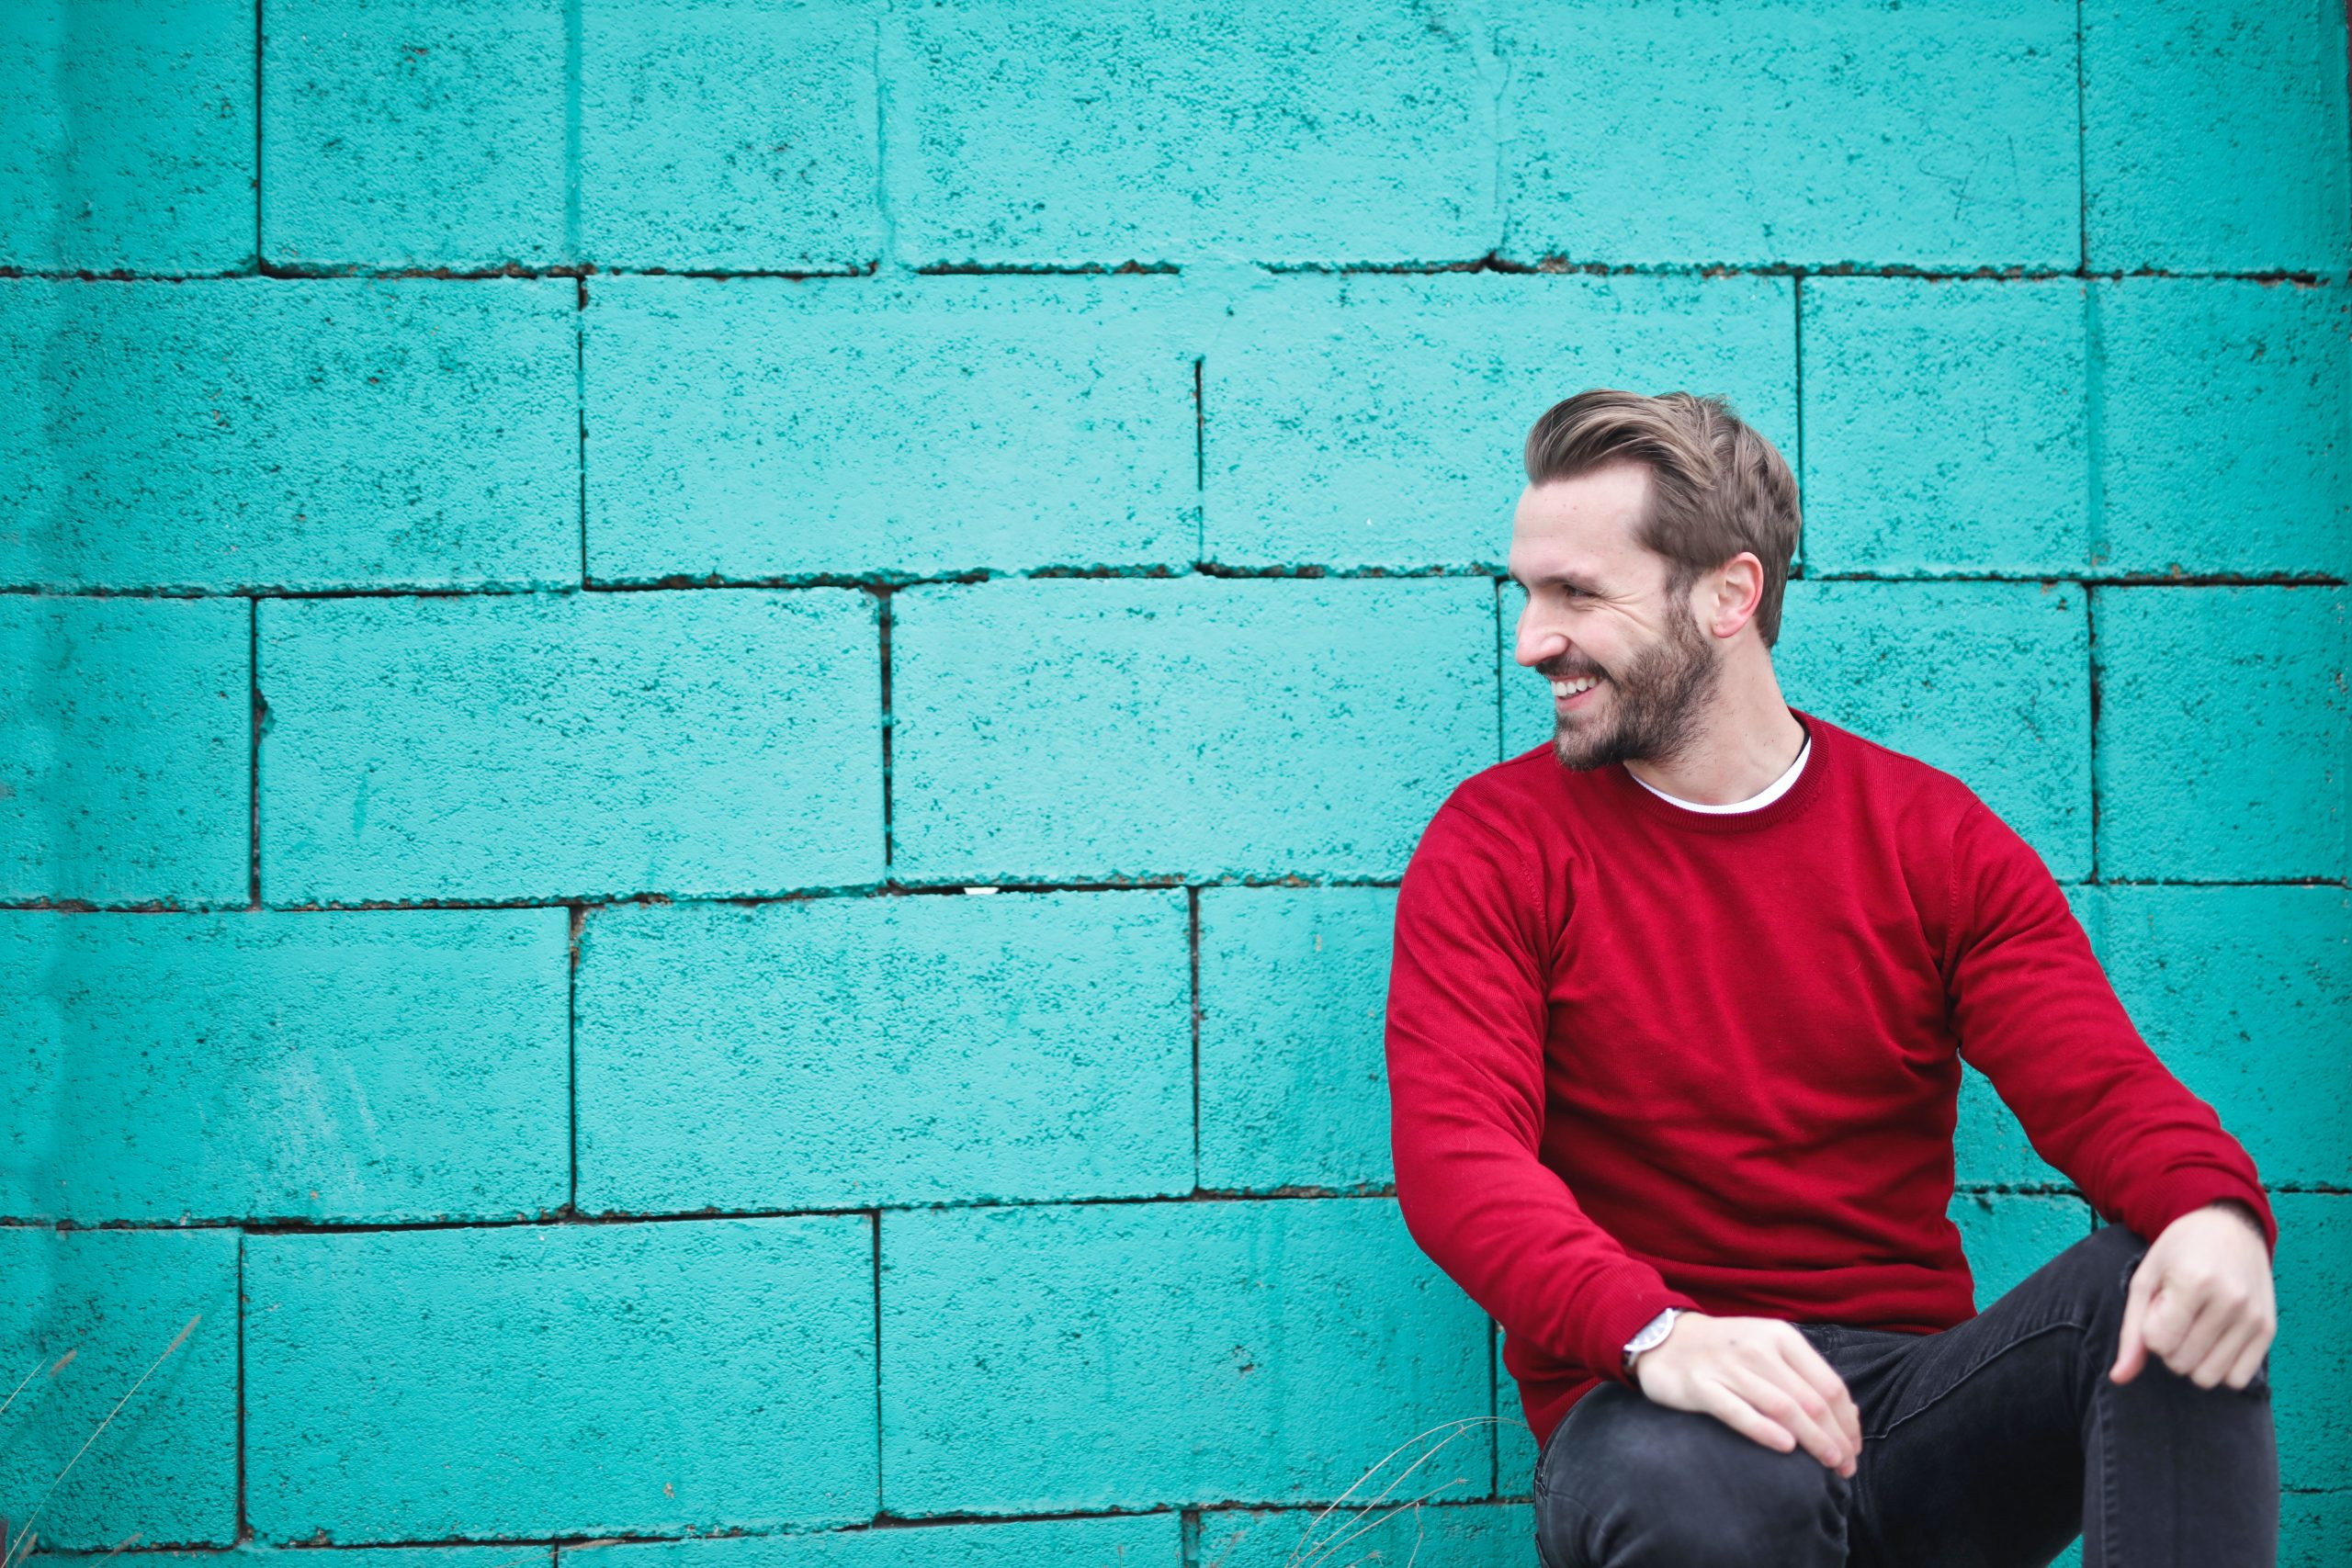 man wearing red top against a blue green brick wall